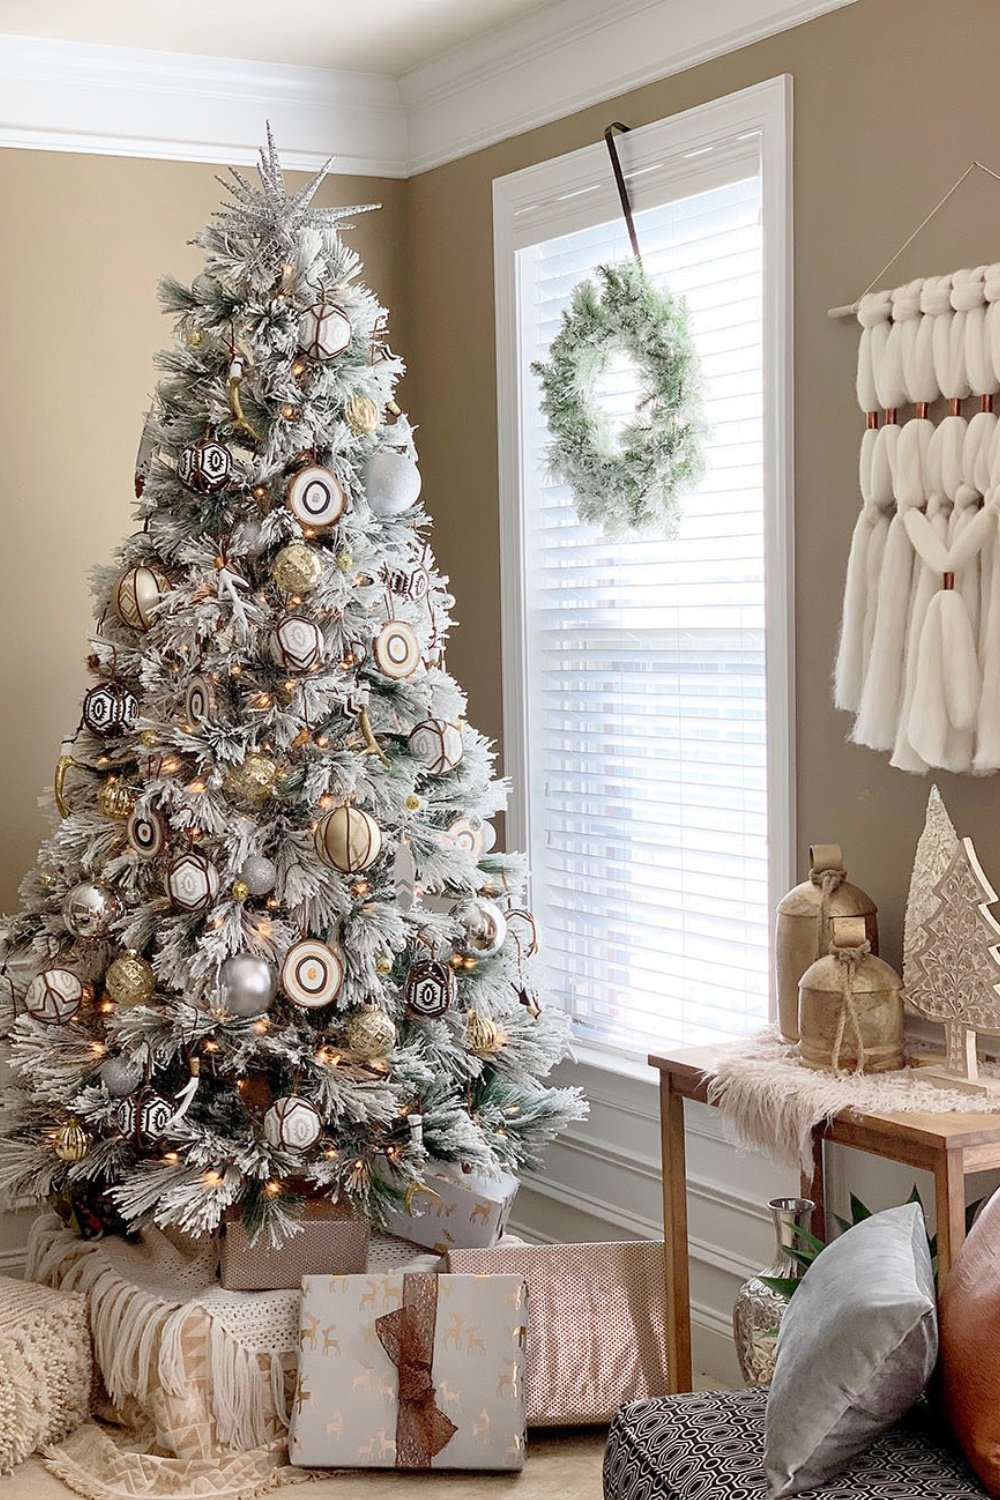 Snowy Eclectic Bohemian Style Christmas Tree